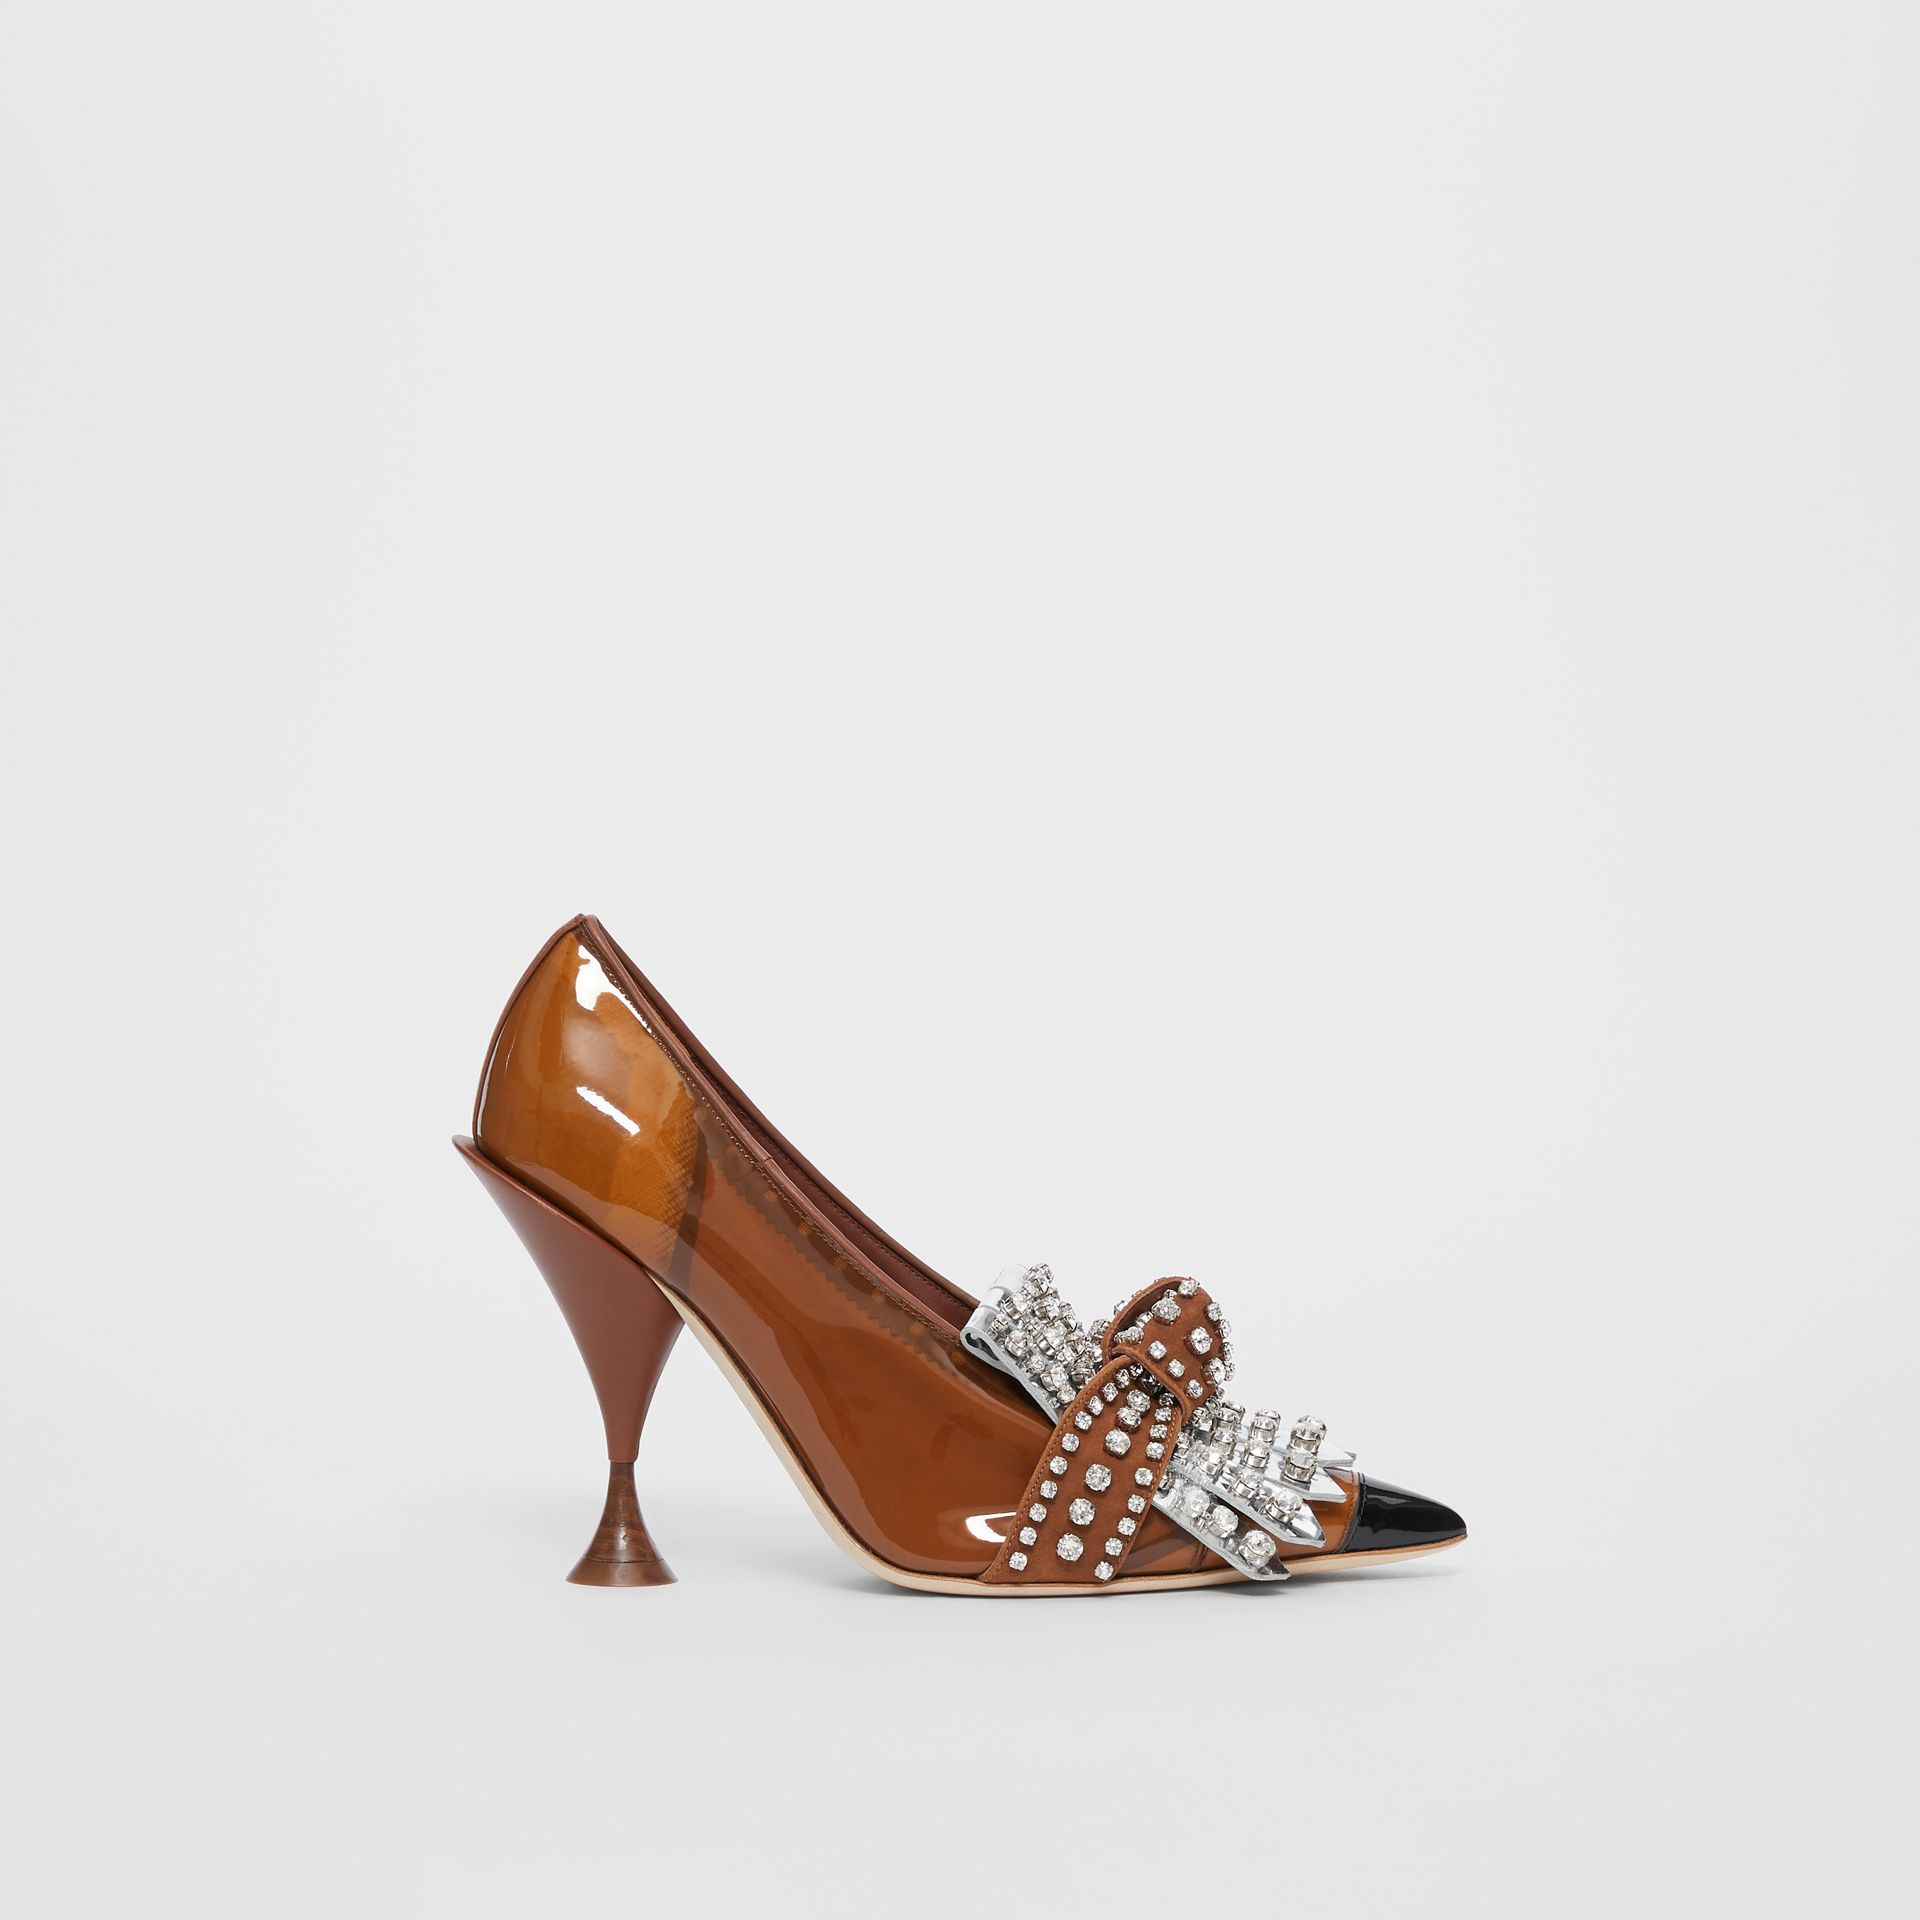 Crystal Kiltie Fringe Vinyl and Leather Point-toe Pumps in Malt Brown/black - Women | Burberry - gallery image 5